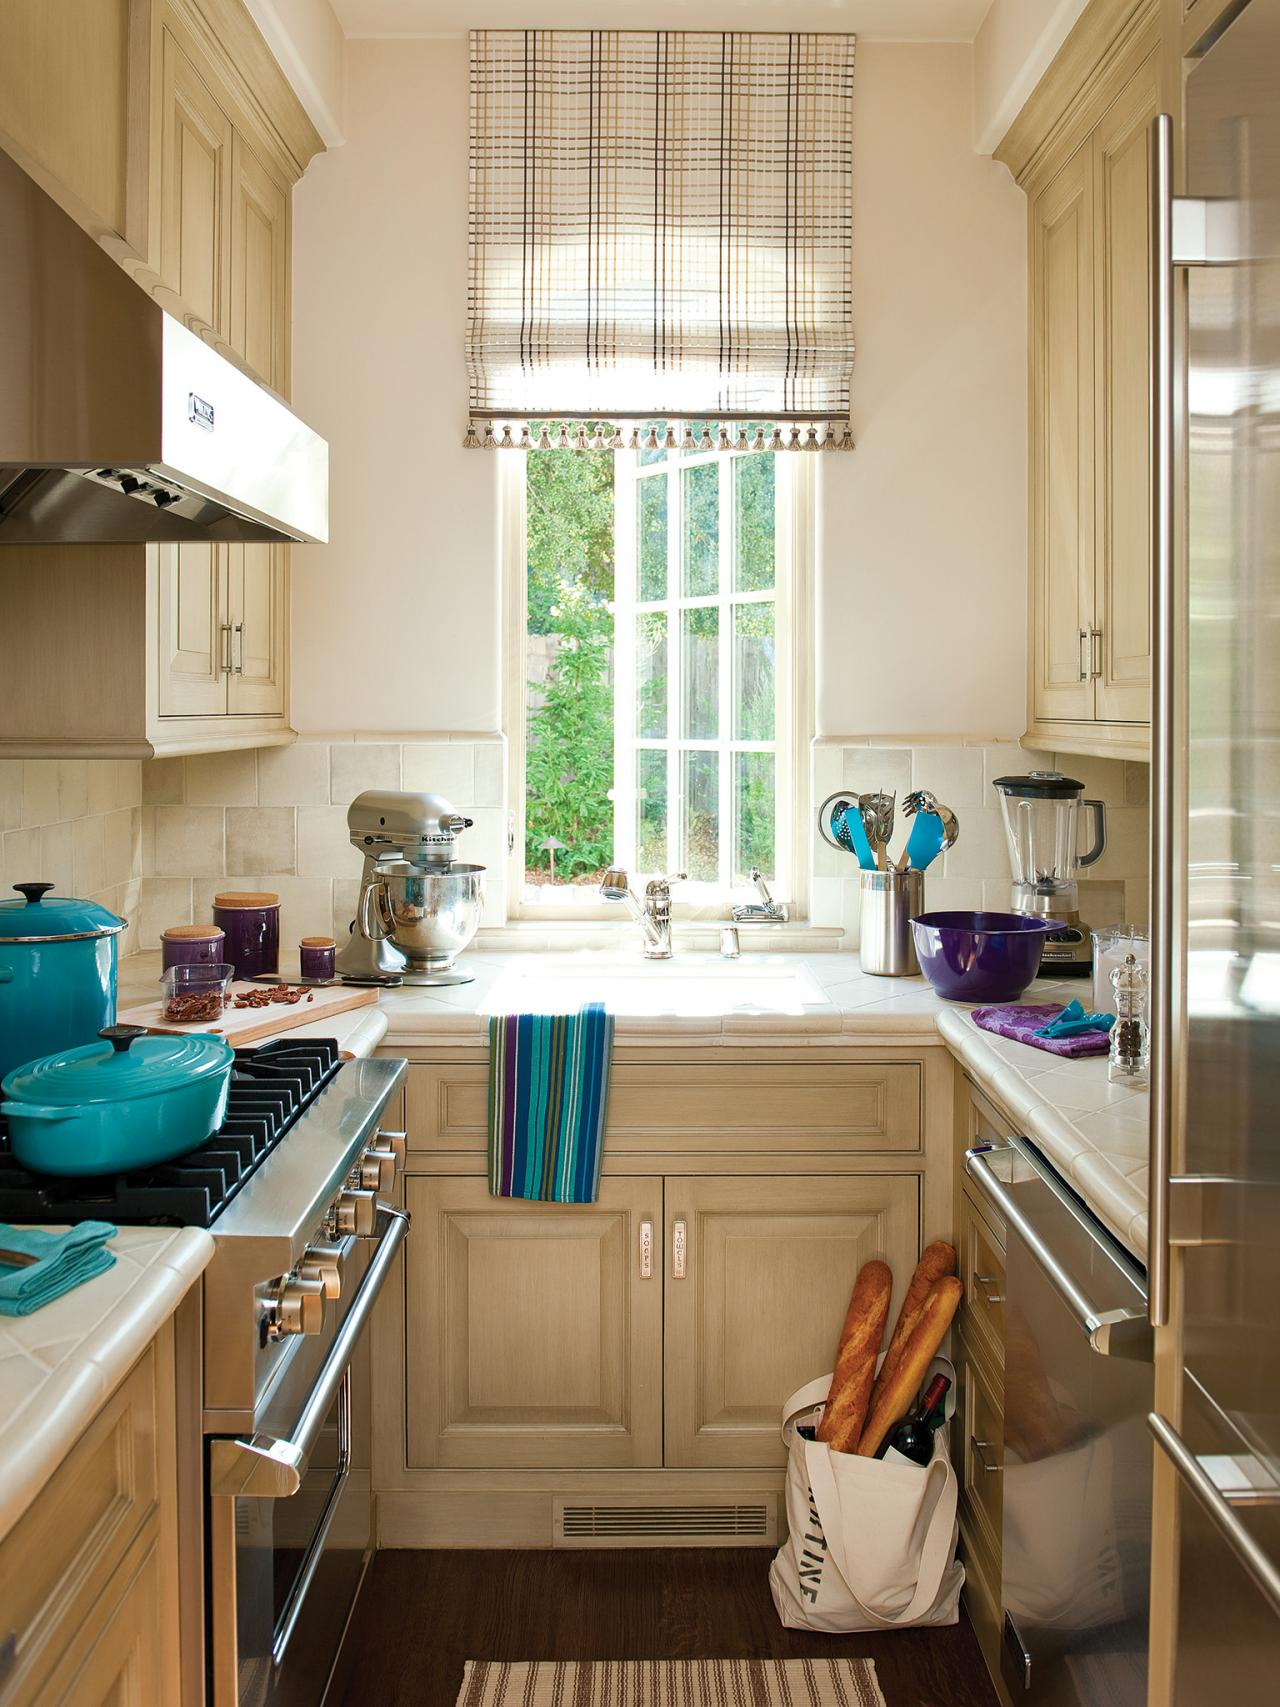 25 Most Popular Kitchen Layout Design Ideas - Decoration Love on Small Kitchen Remodeling Ideas  id=86576